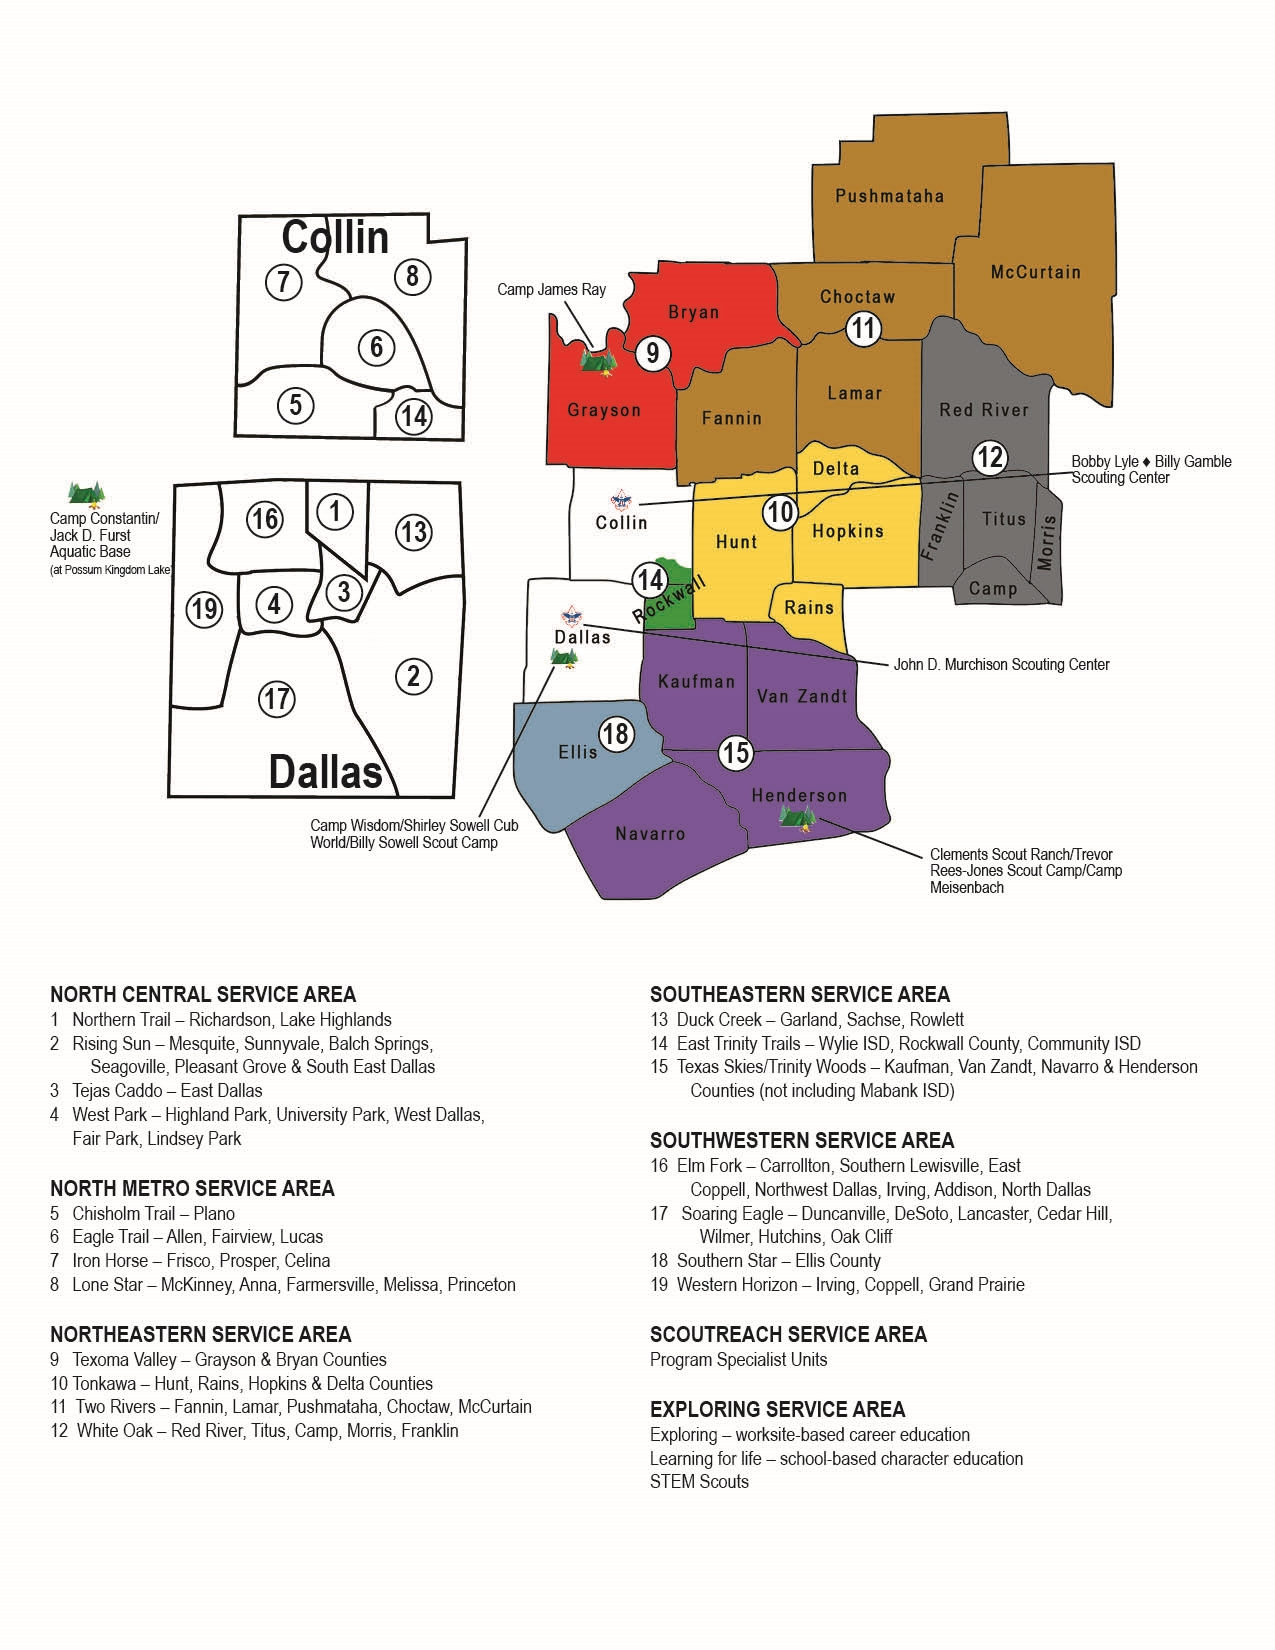 circleten-Council-Map-with-NEW-district-boundaries-and-NAMES-2019---TS-TW-Merge-jpg_1275x1650_03_31_57_6051.jpg